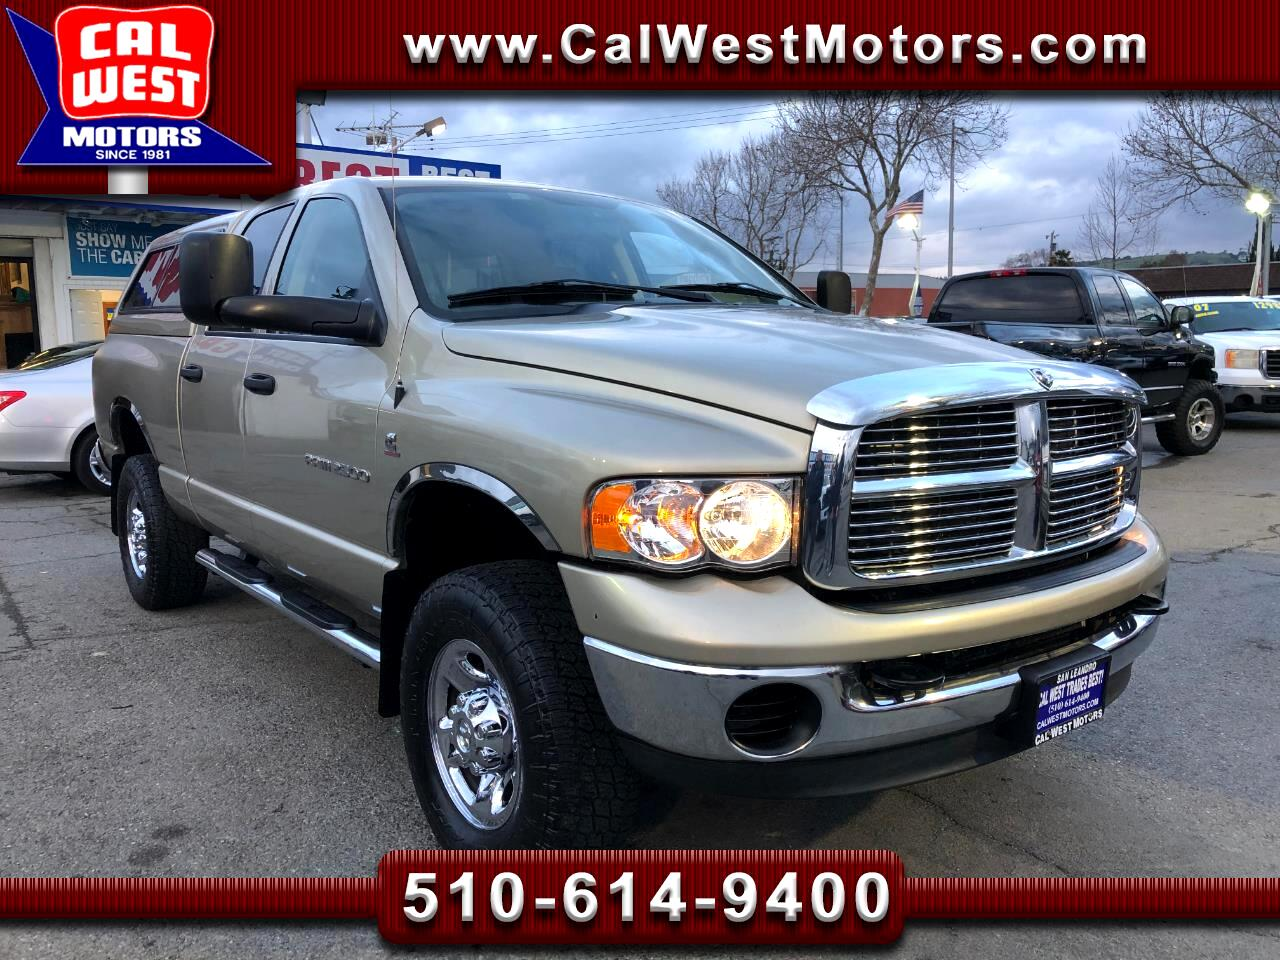 2004 Dodge Ram 2500 4X4 Quad SLT CumminsDiesel GreatMtnce SuperNice